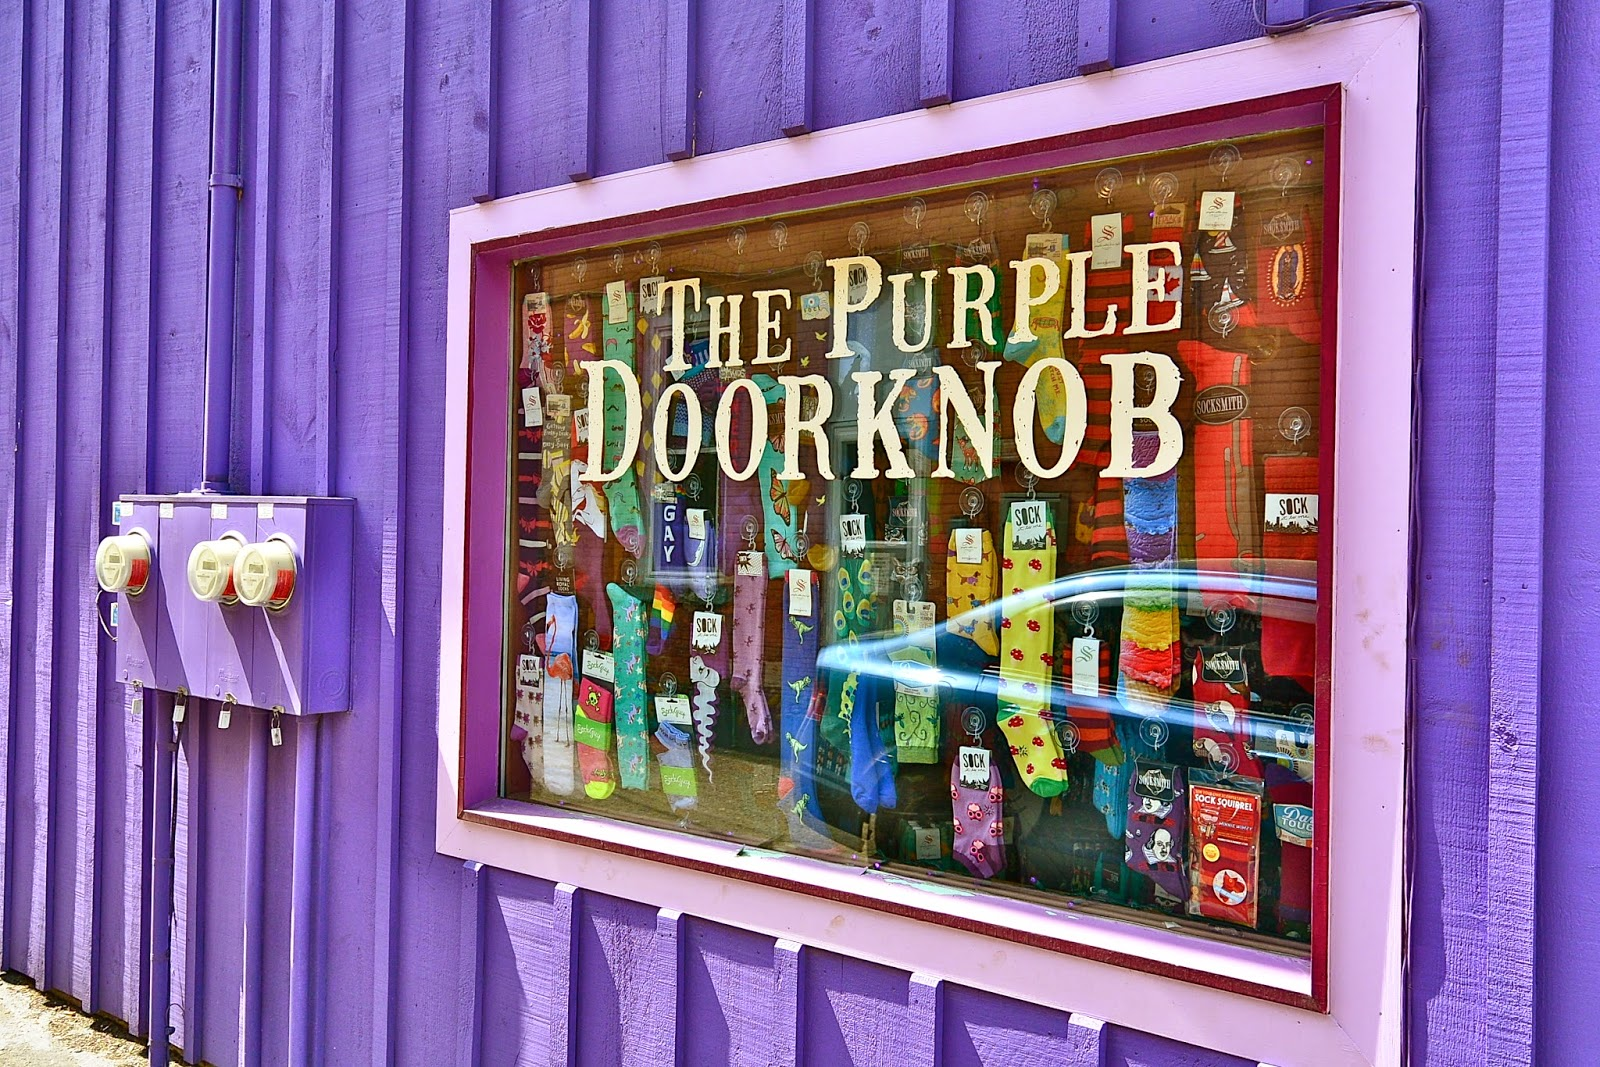 The Purple Door Knob. WOW, This Place Sure Stands Out In Ellicottville NY.  Tom